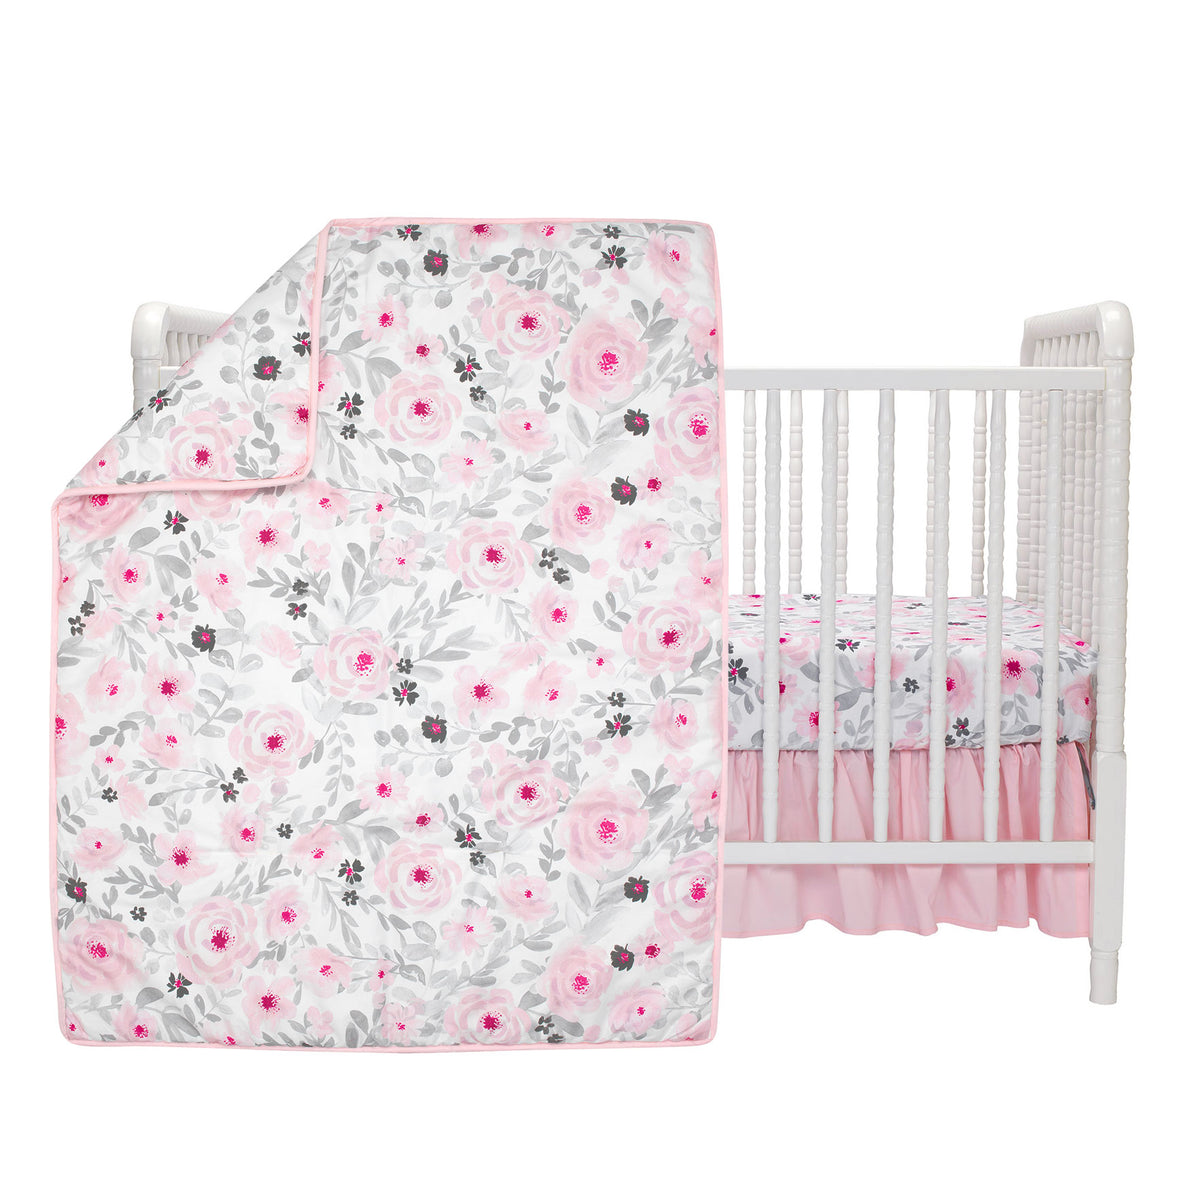 Blossom Pink Watercolor Floral 3 Piece Baby Crib Bedding Set